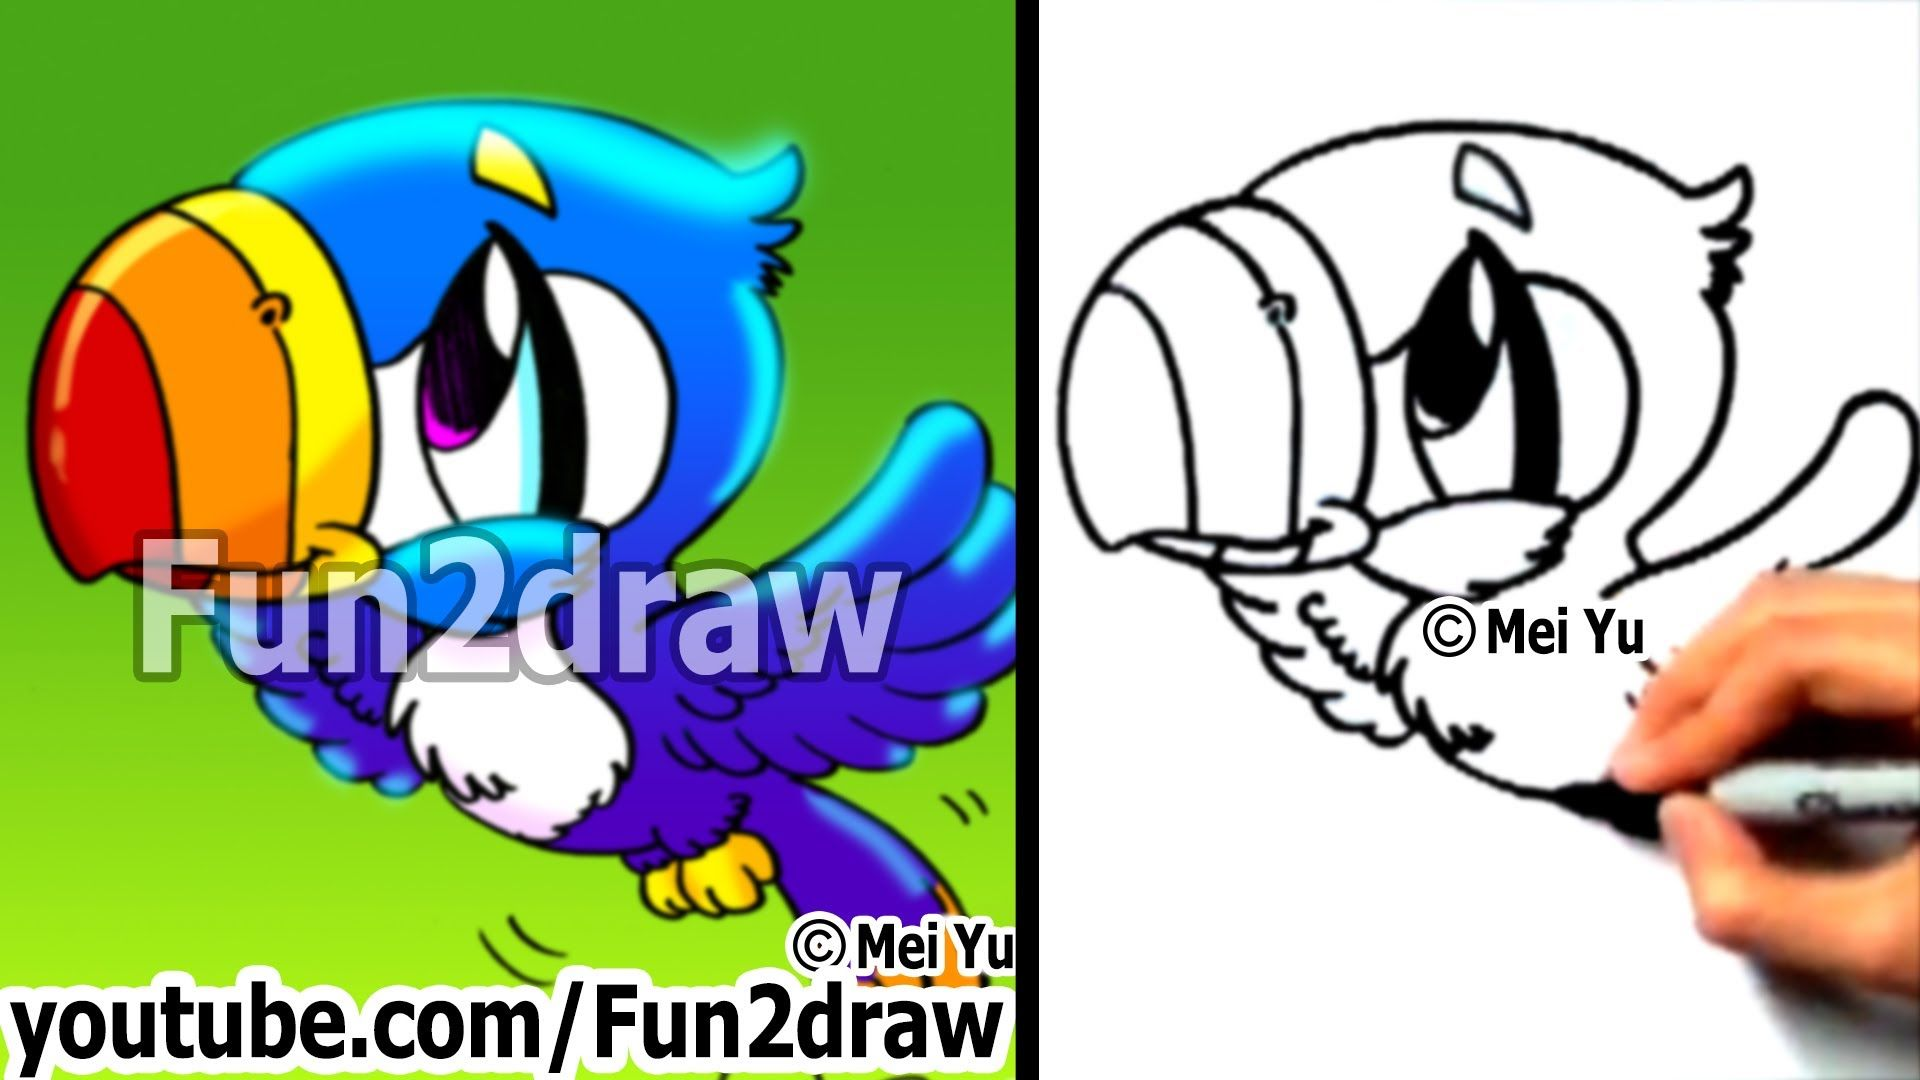 17 Best Images About Fun2draw On Pinterest How To Draw Animals, Easy Things  To Draw